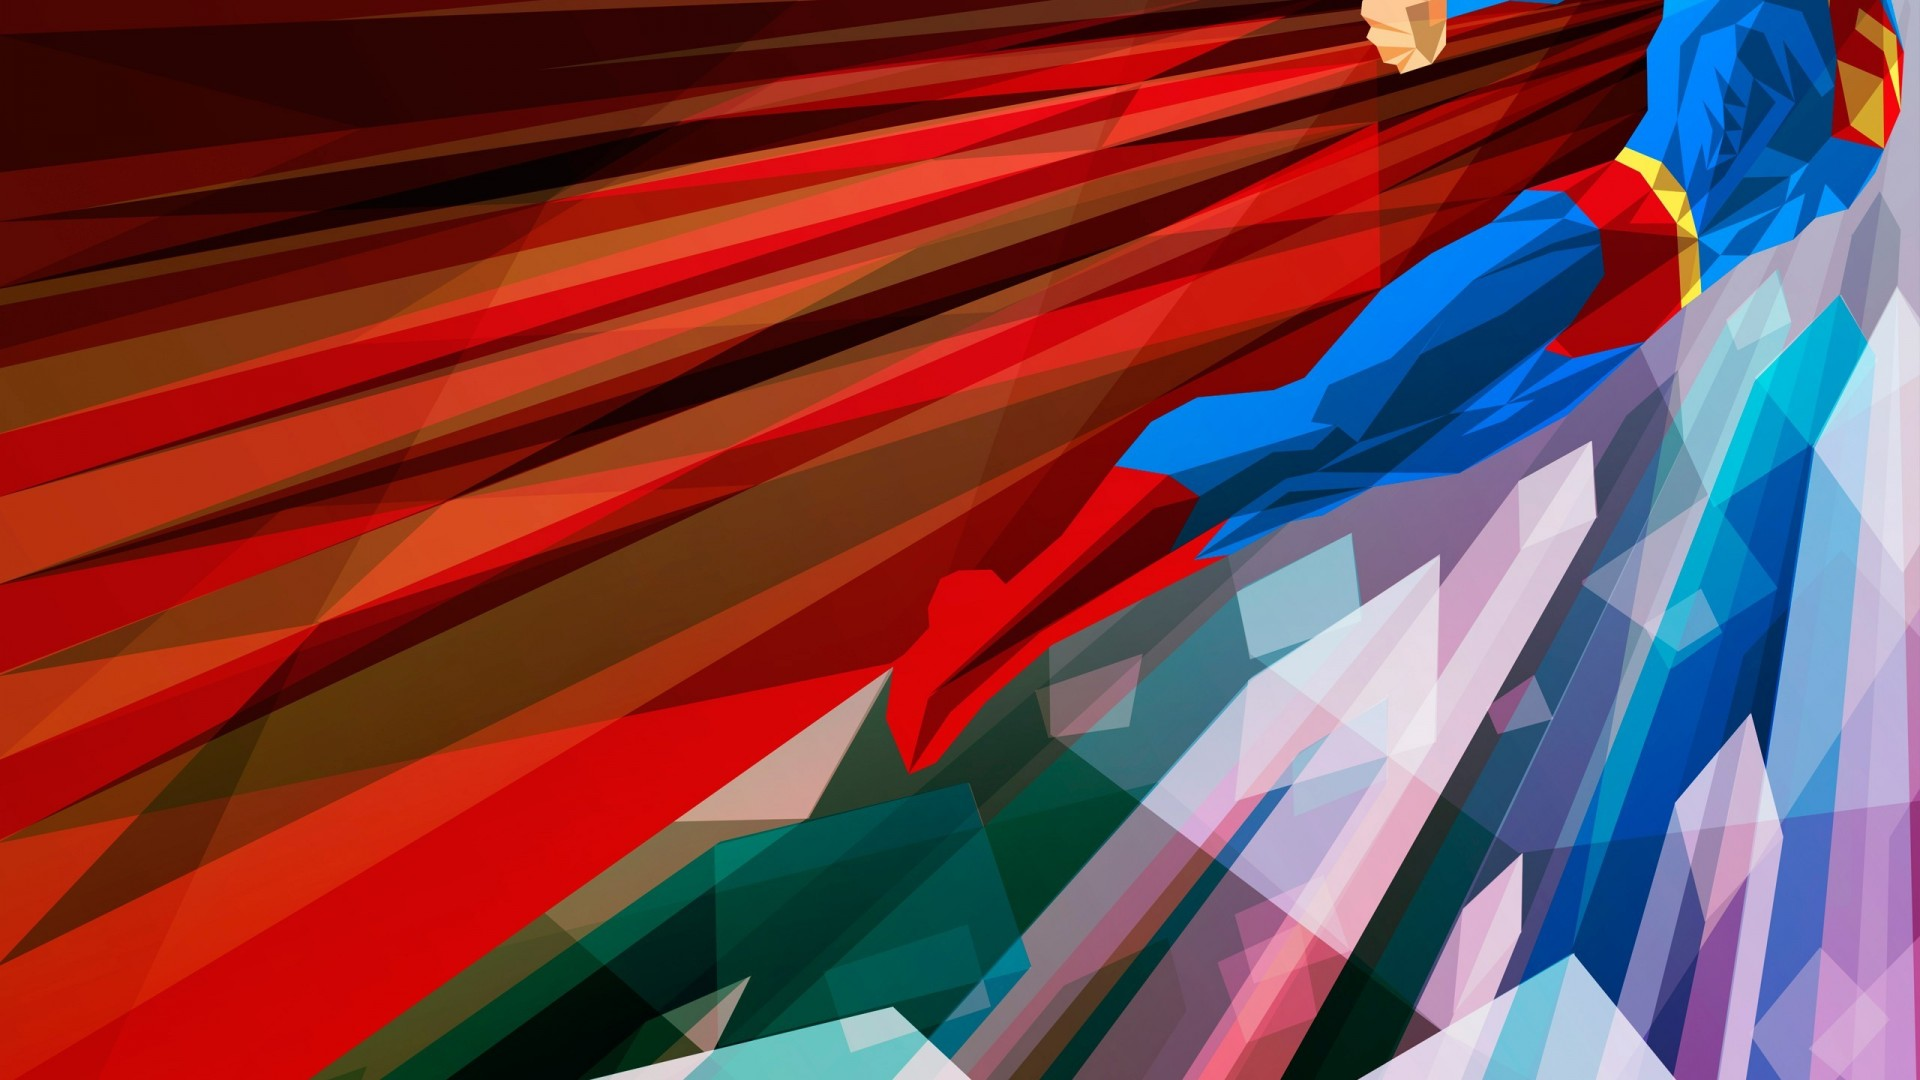 Superman Wallpaper Hd 221050 1920x1080